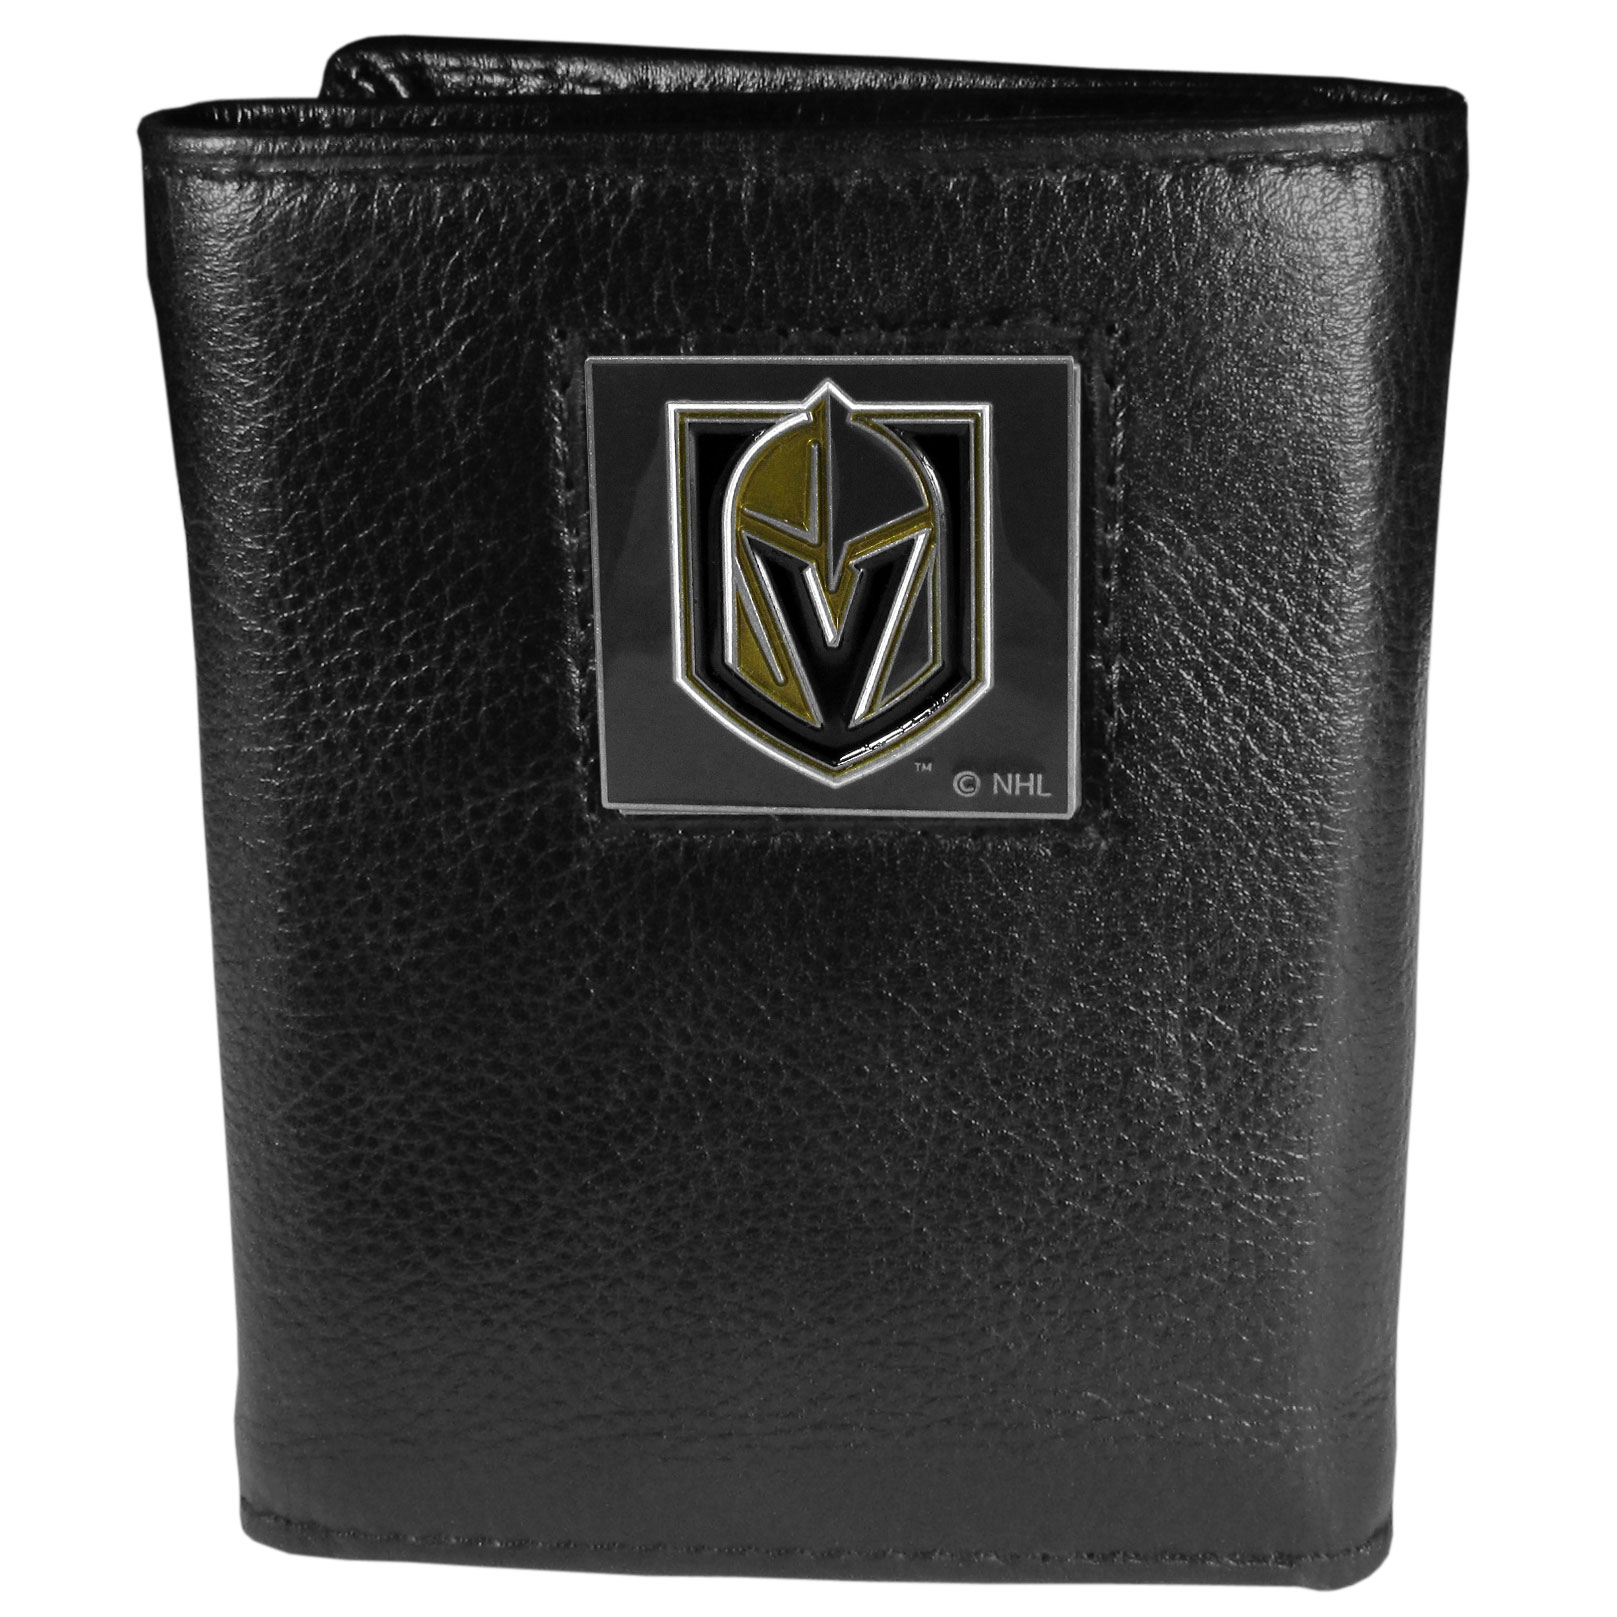 Las Vegas Golden Knights® Deluxe Leather Tri-fold Wallet - Our officially licensed fine grain leather wallet features numerous card slots, windowed ID slots, removable picture slots and large billfold pockets. This quality wallet has an enameled Las Vegas Golden Knights® emblem on the front of the wallet making it a stylish way to show off your team pride.